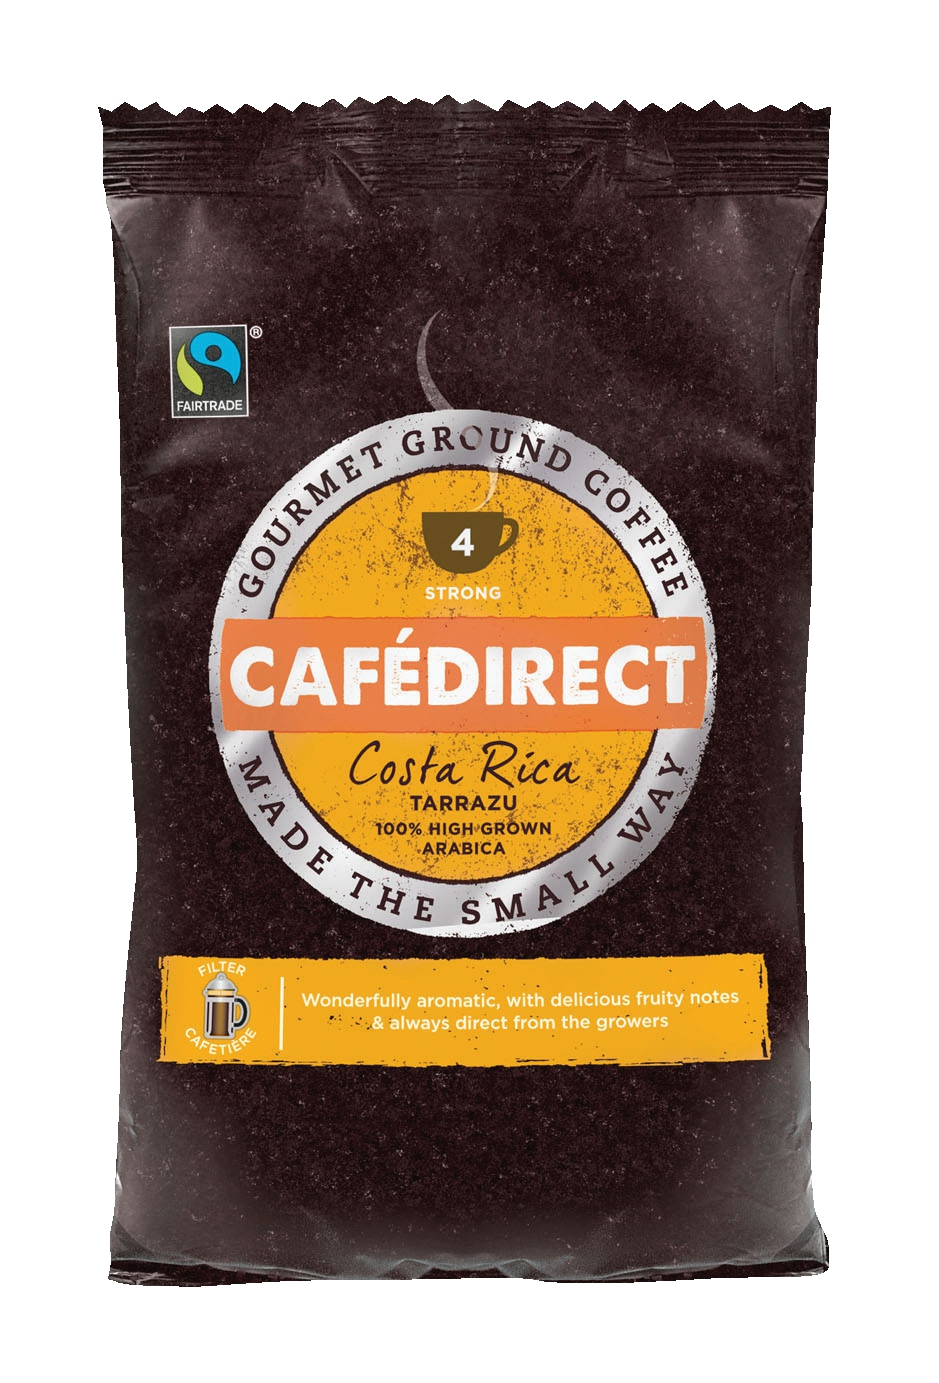 Cafe Direct Tarrazu Costa Rican Filter Coffee 60g Sachet Pack 45